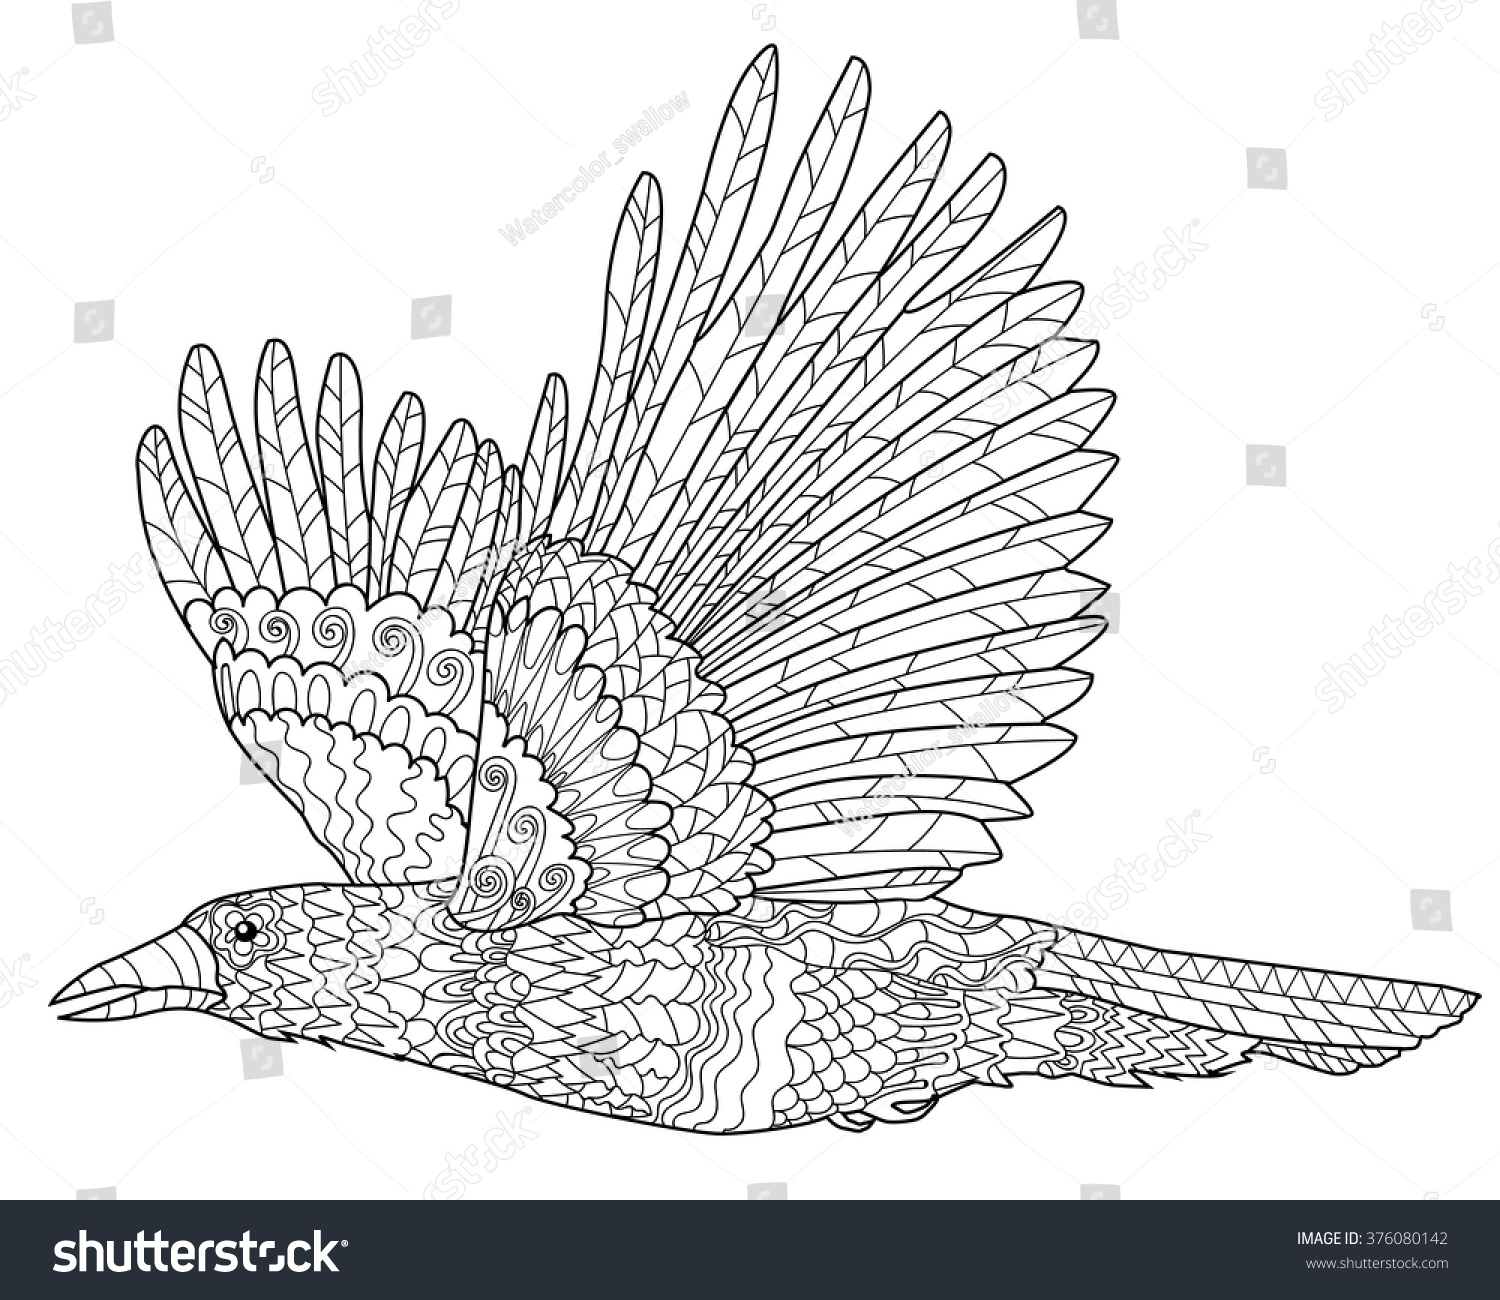 Flying raven high details adult antistress stock vector for Flying crow coloring page